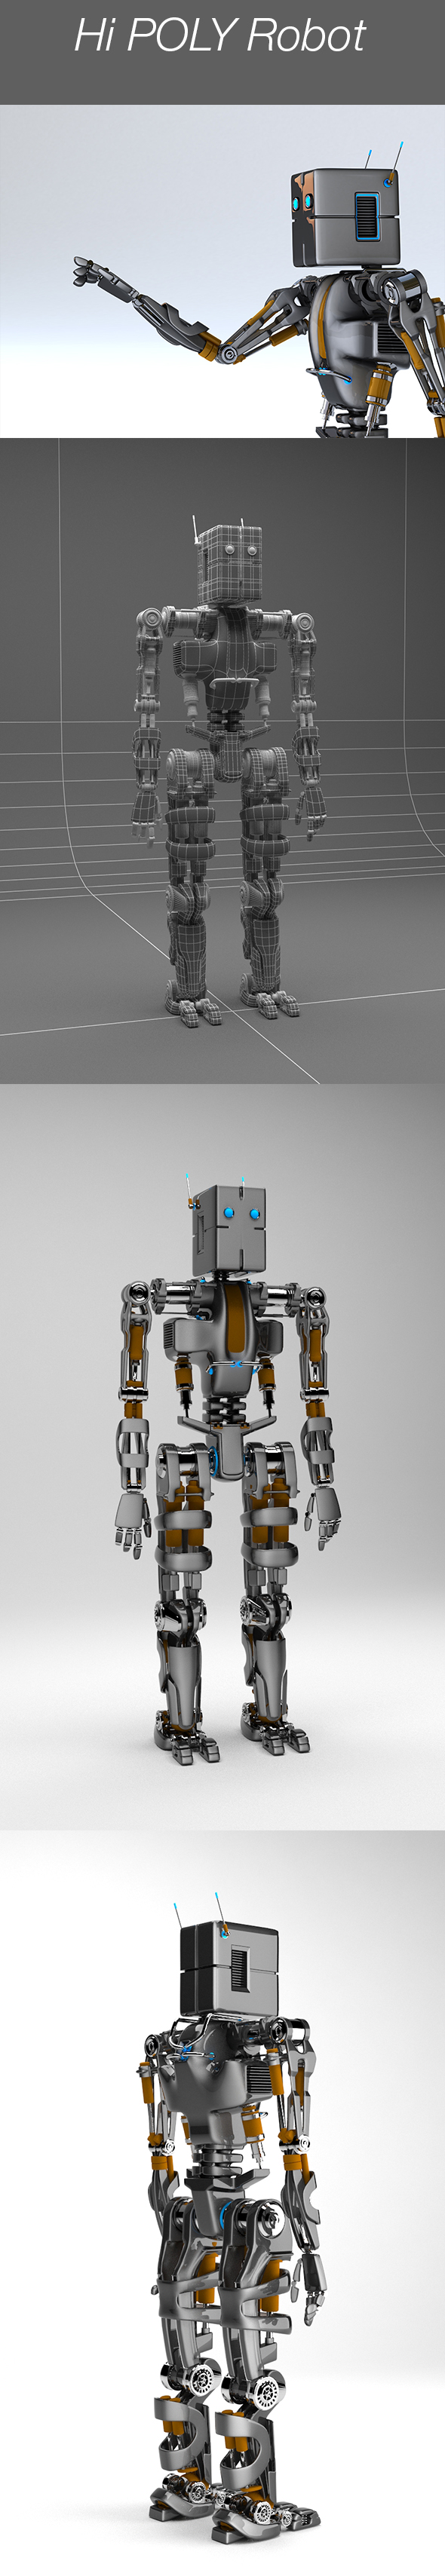 Robot - 3DOcean Item for Sale